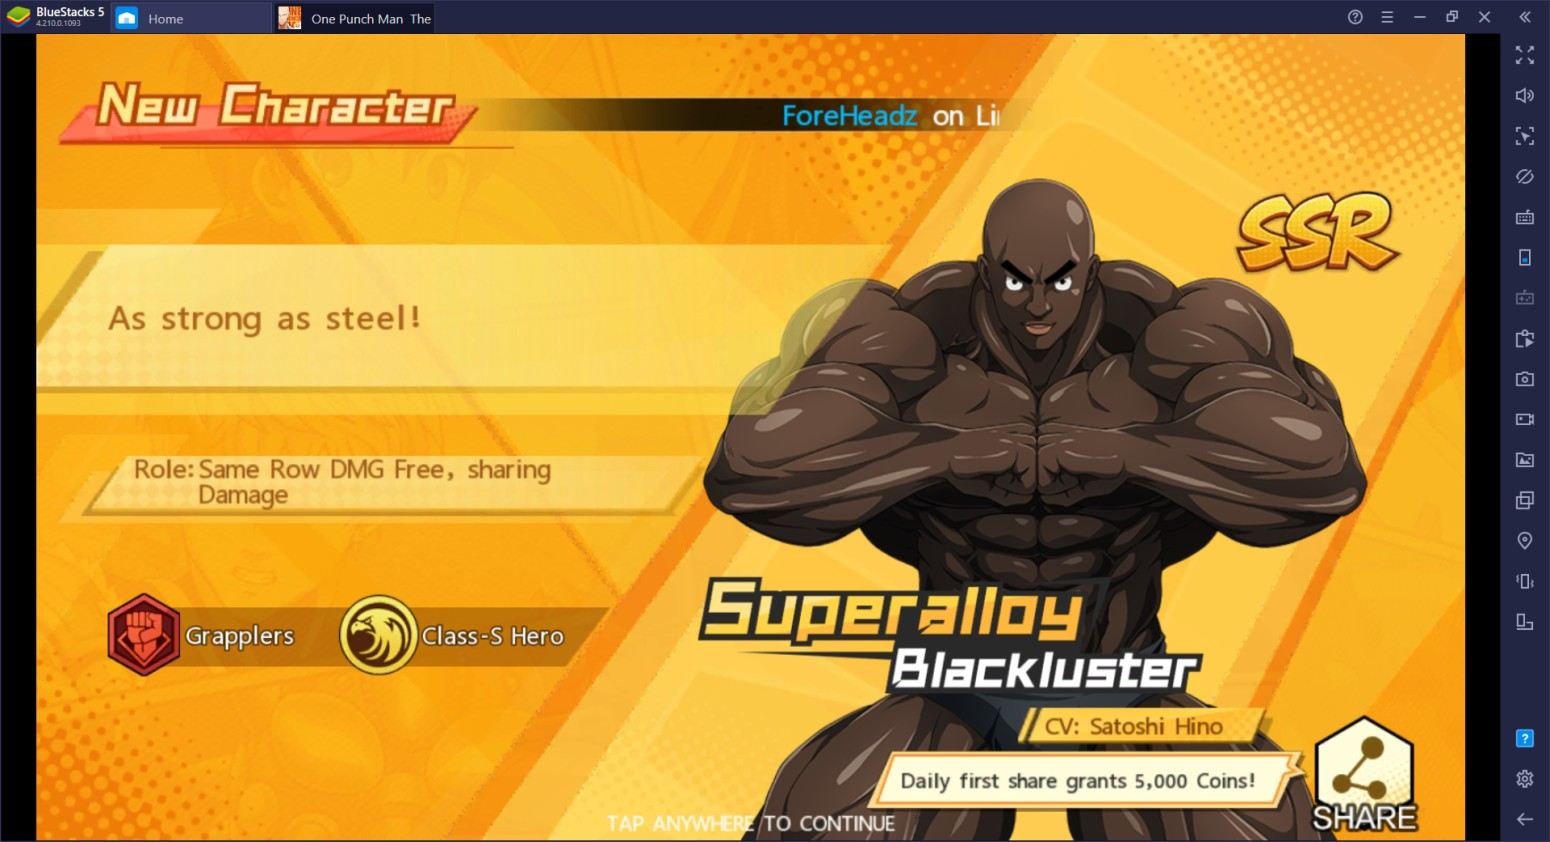 In-depth Guide to Keymapping One Punch Man: The Strongest on BlueStacks